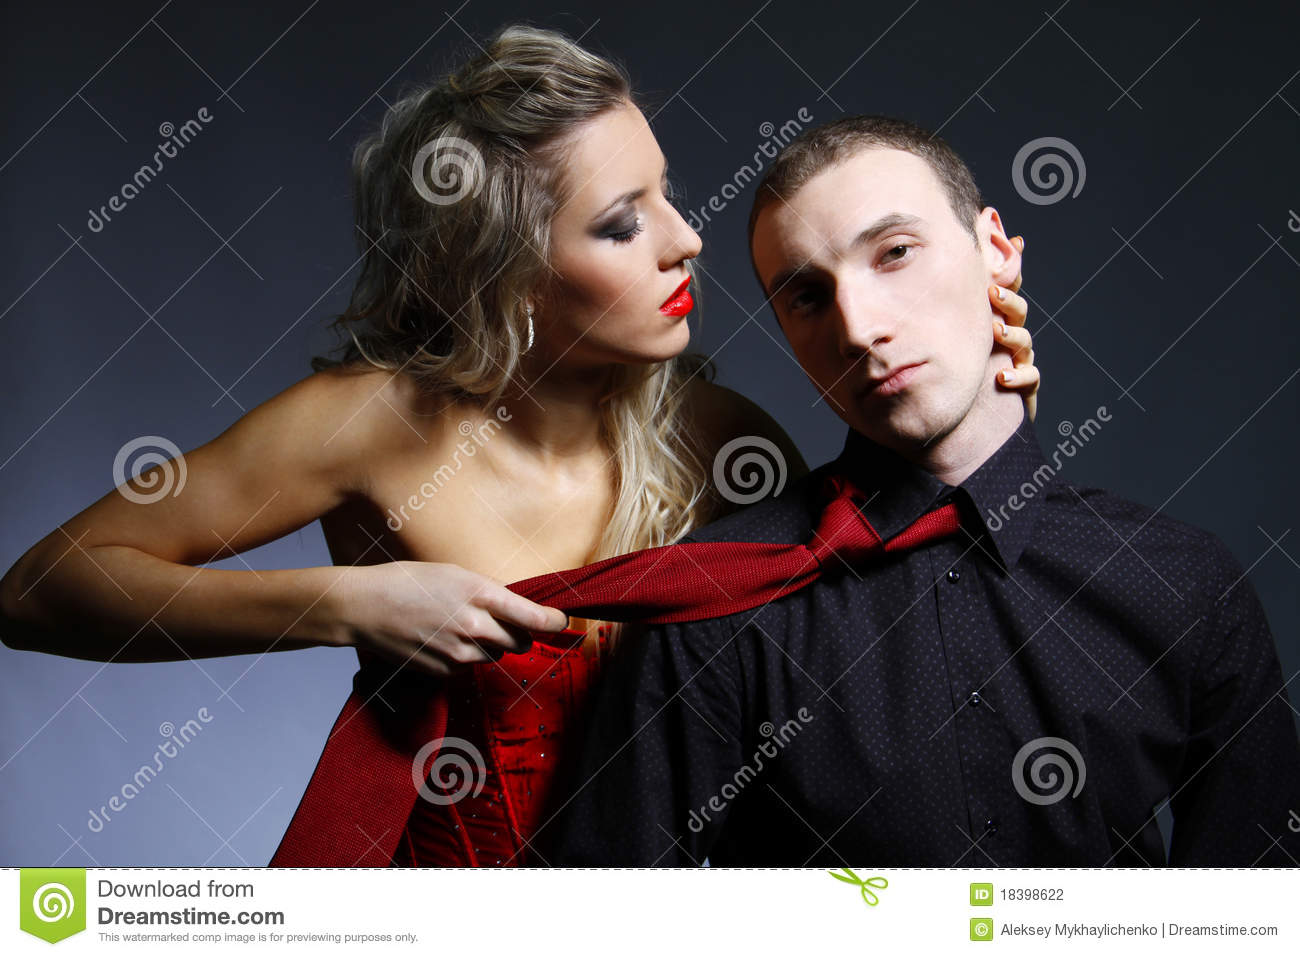 http://thumbs.dreamstime.com/z/woman-holding-man-tie-18398622.jpg